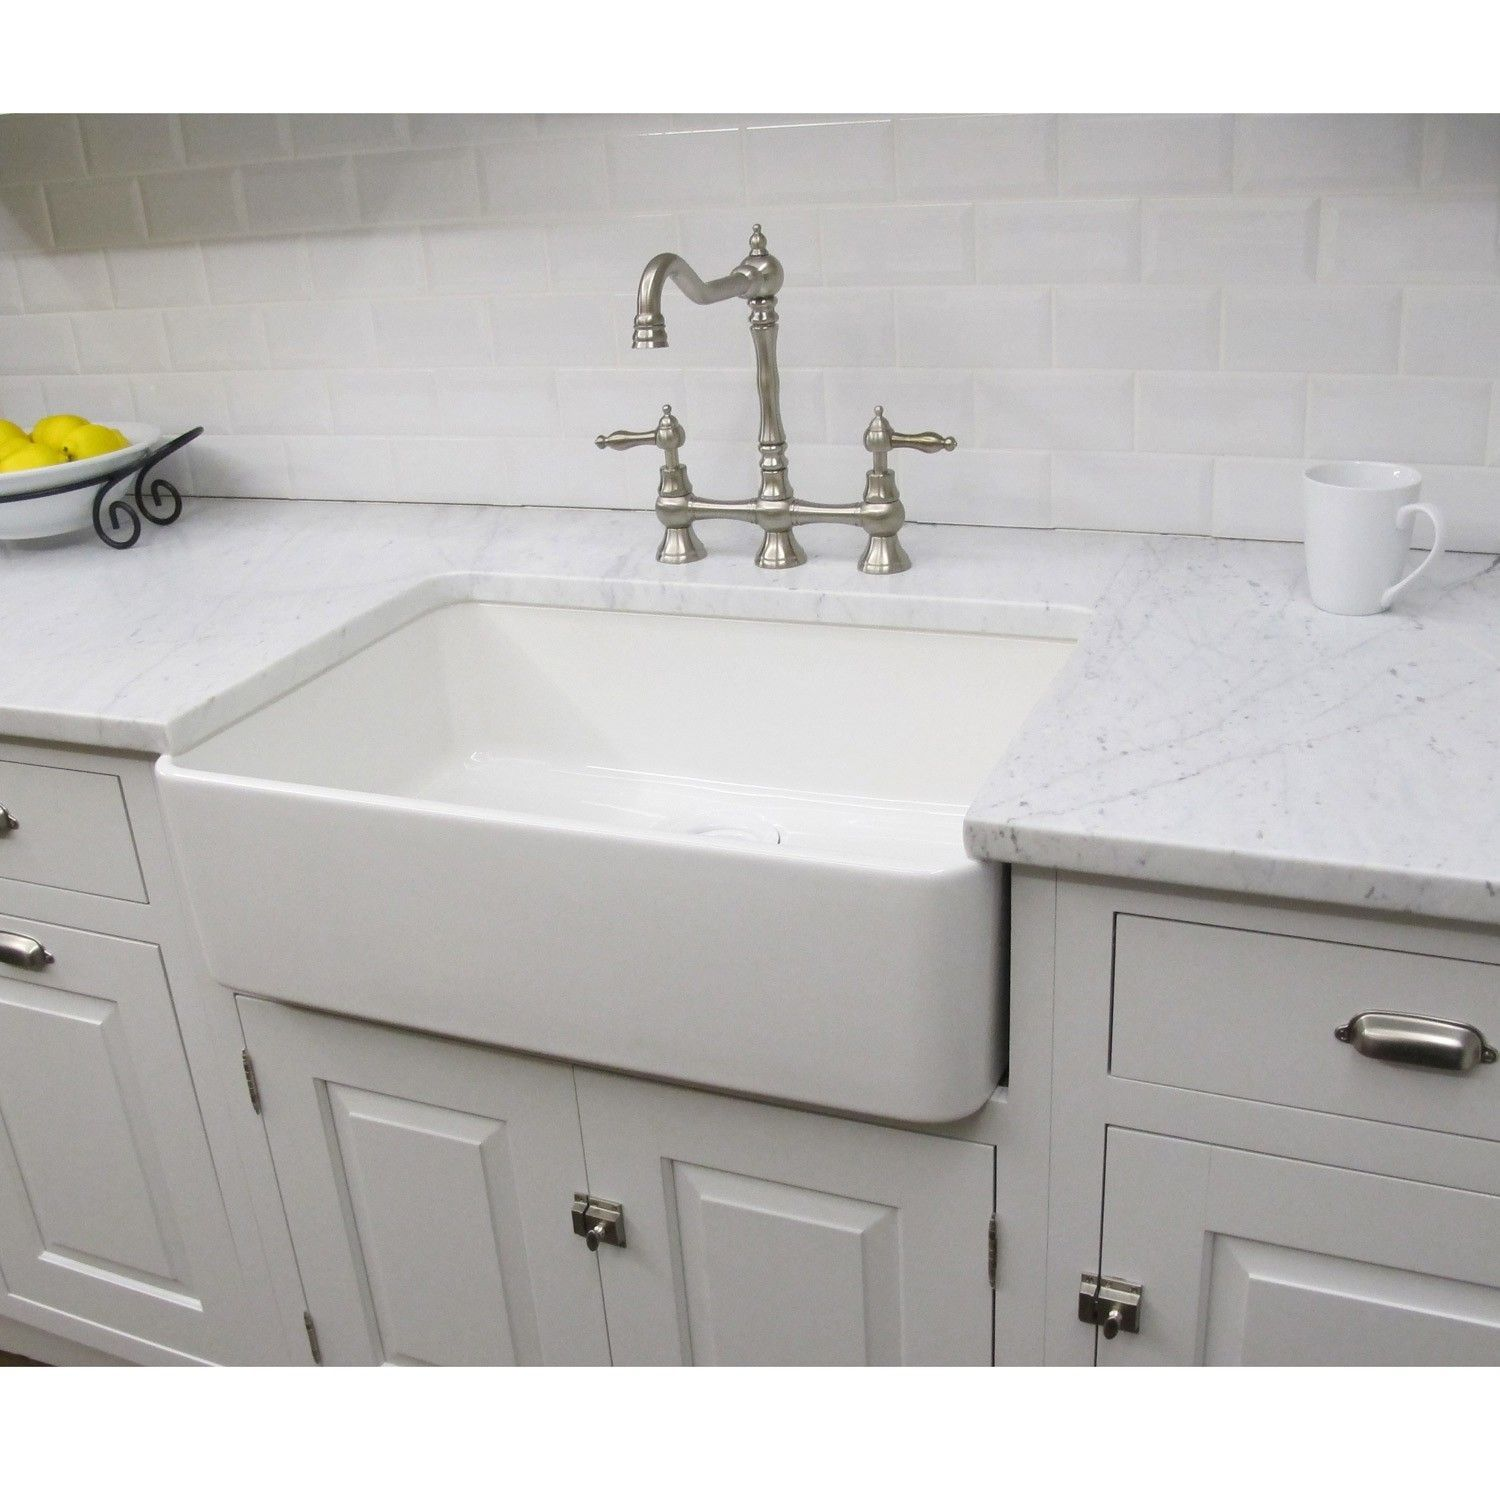 Large White Fireclay Apron Front 29 5 Inch Farmhouse Kitchen Sink